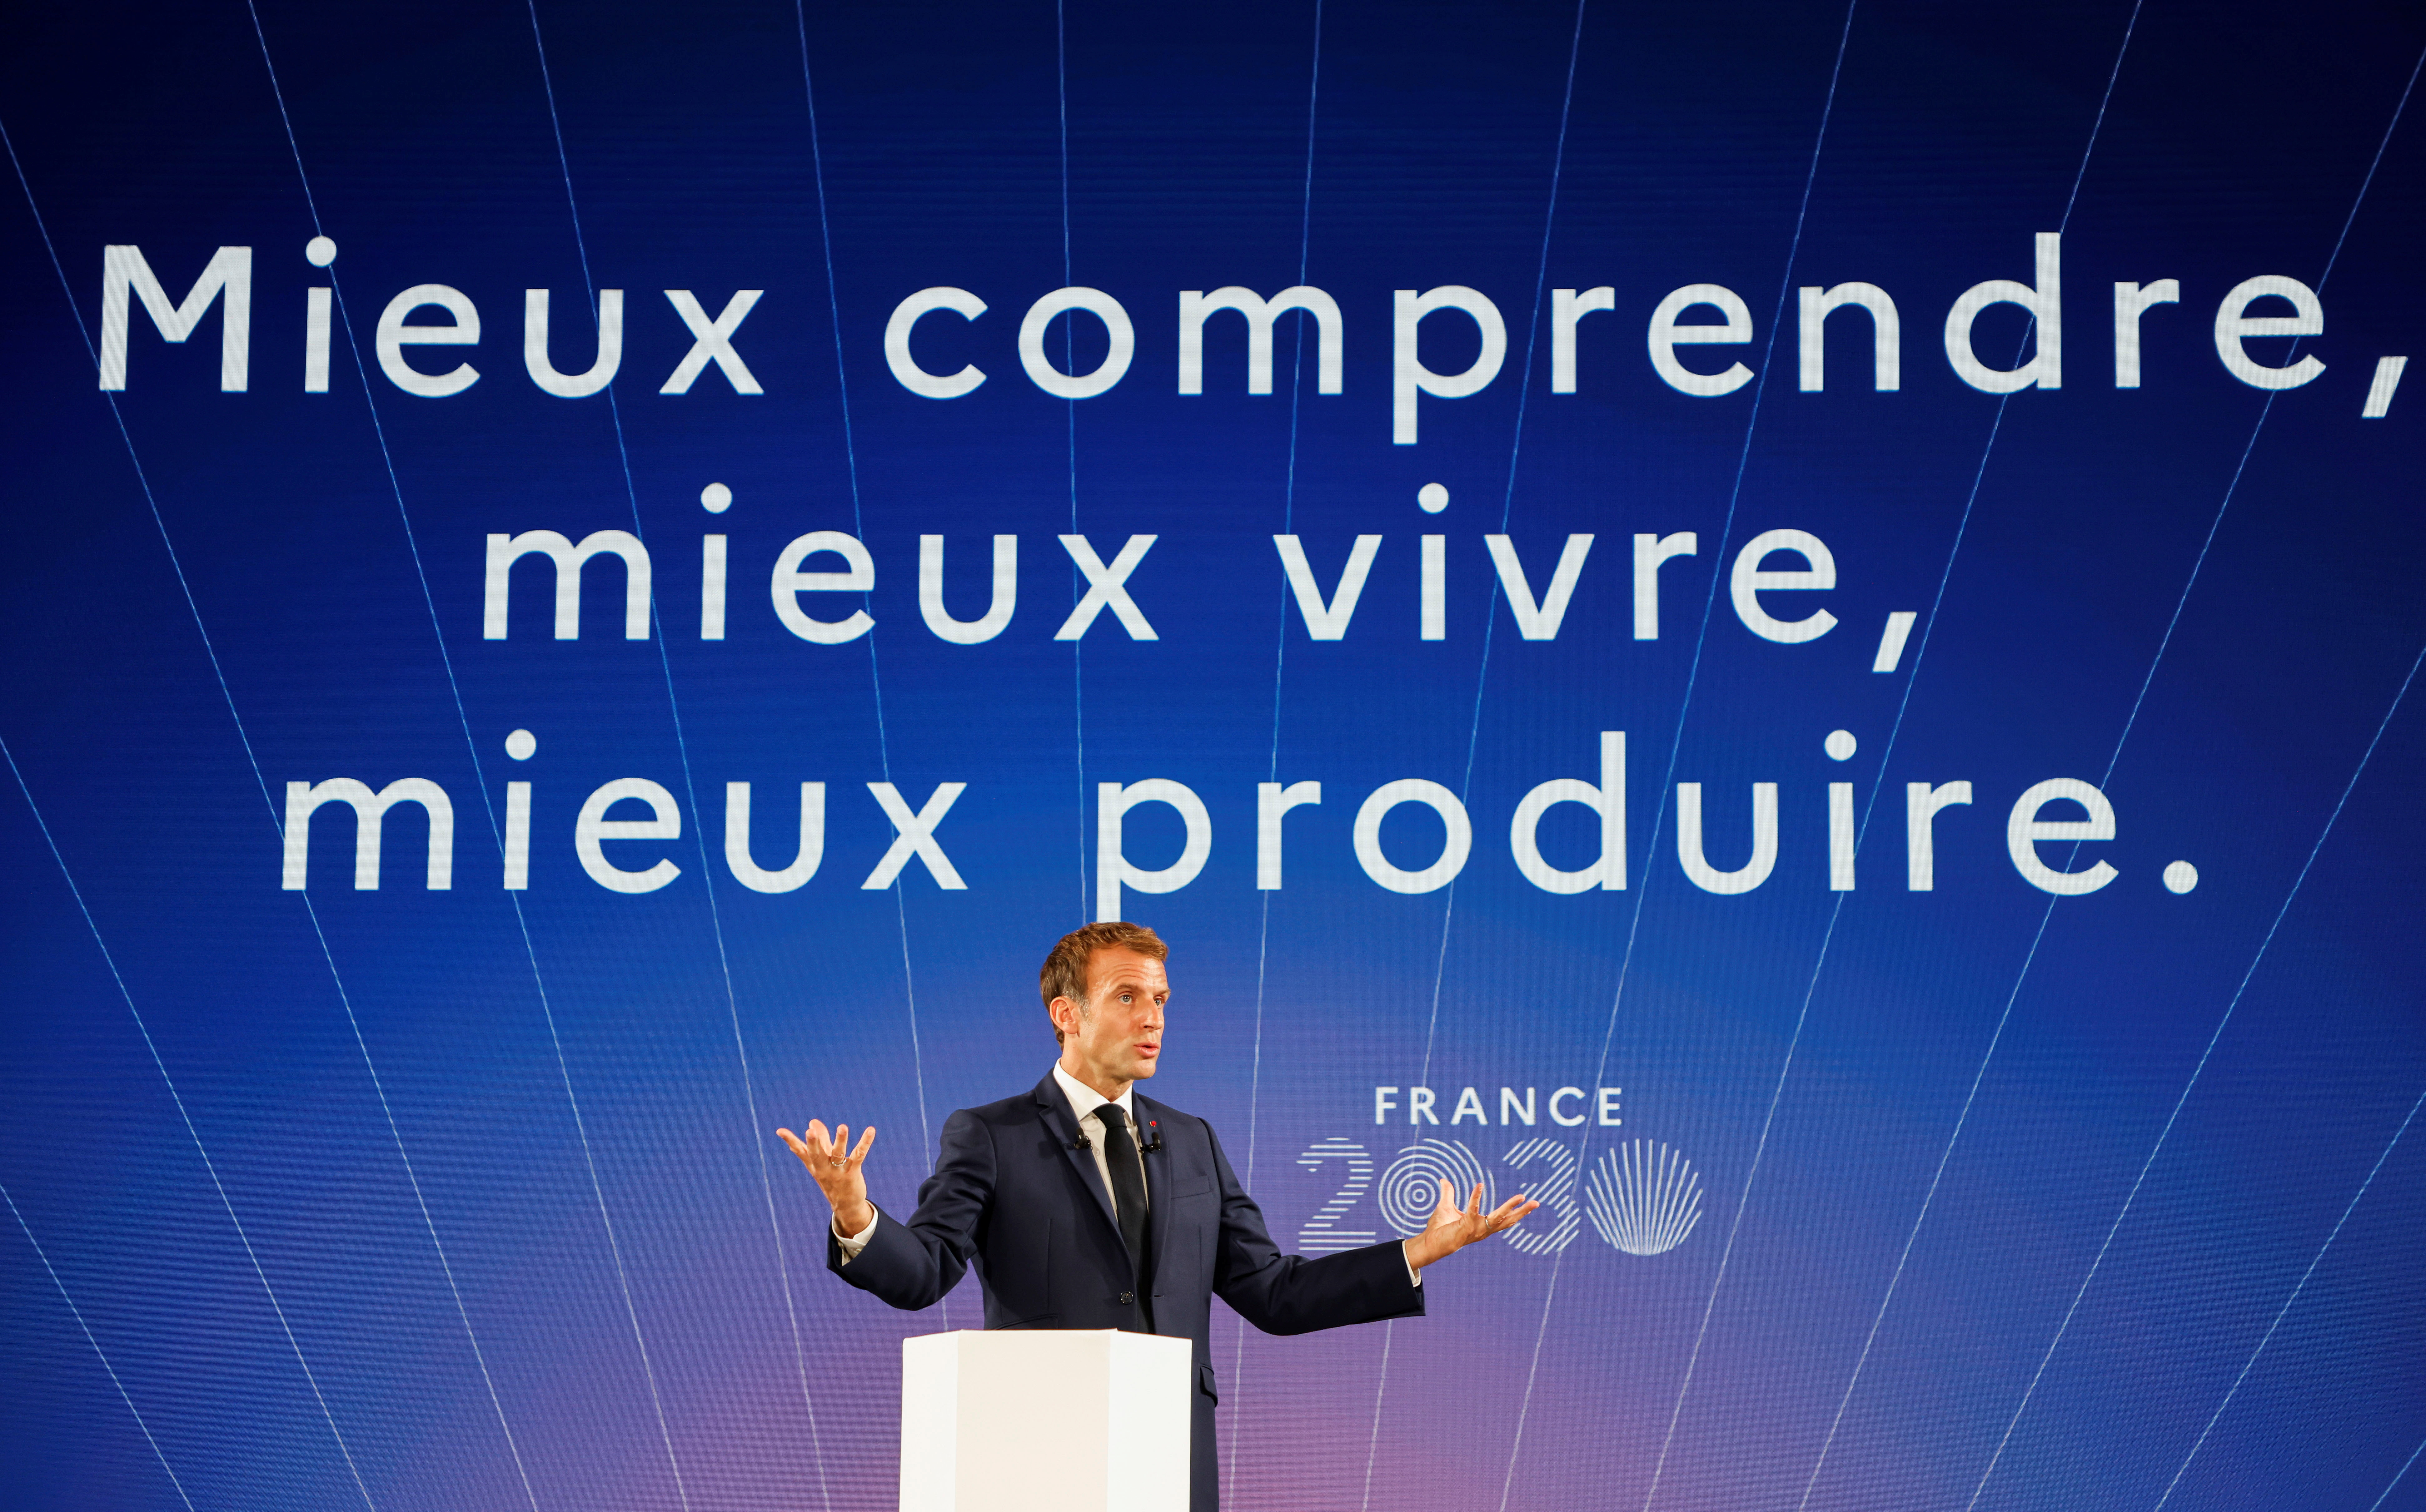 French President Emmanuel Macron speaks in front of a screen with a sentence reading